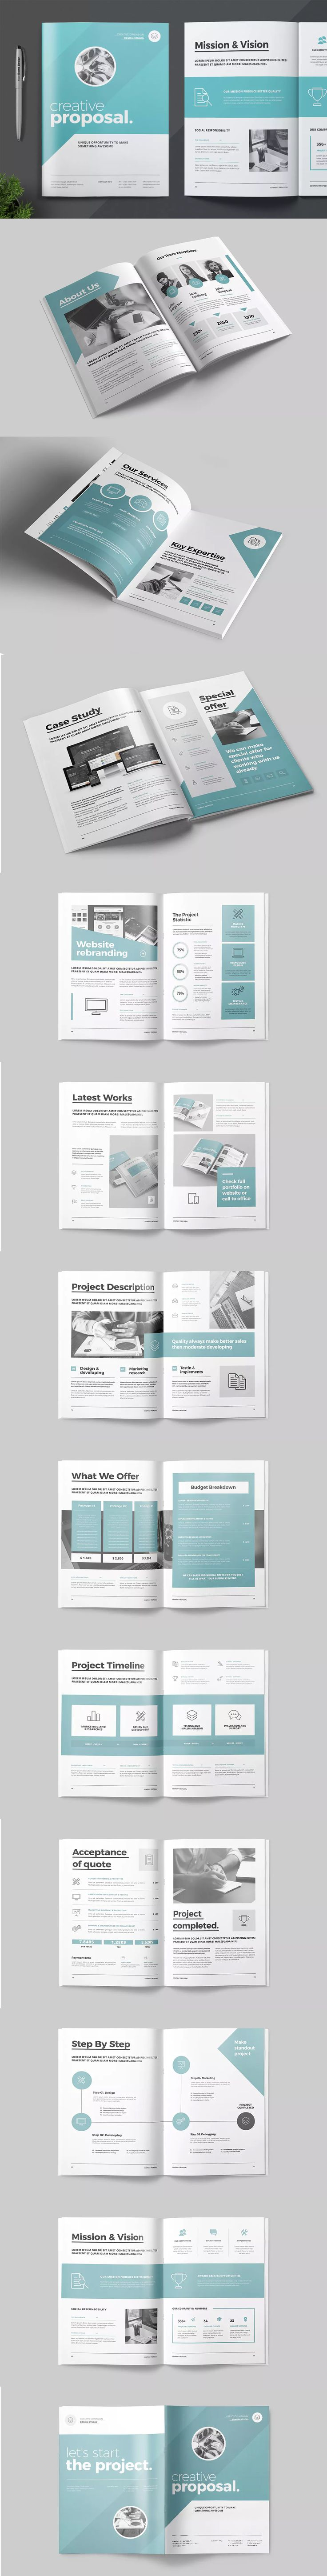 Best Proposal Brochure Templates Images On